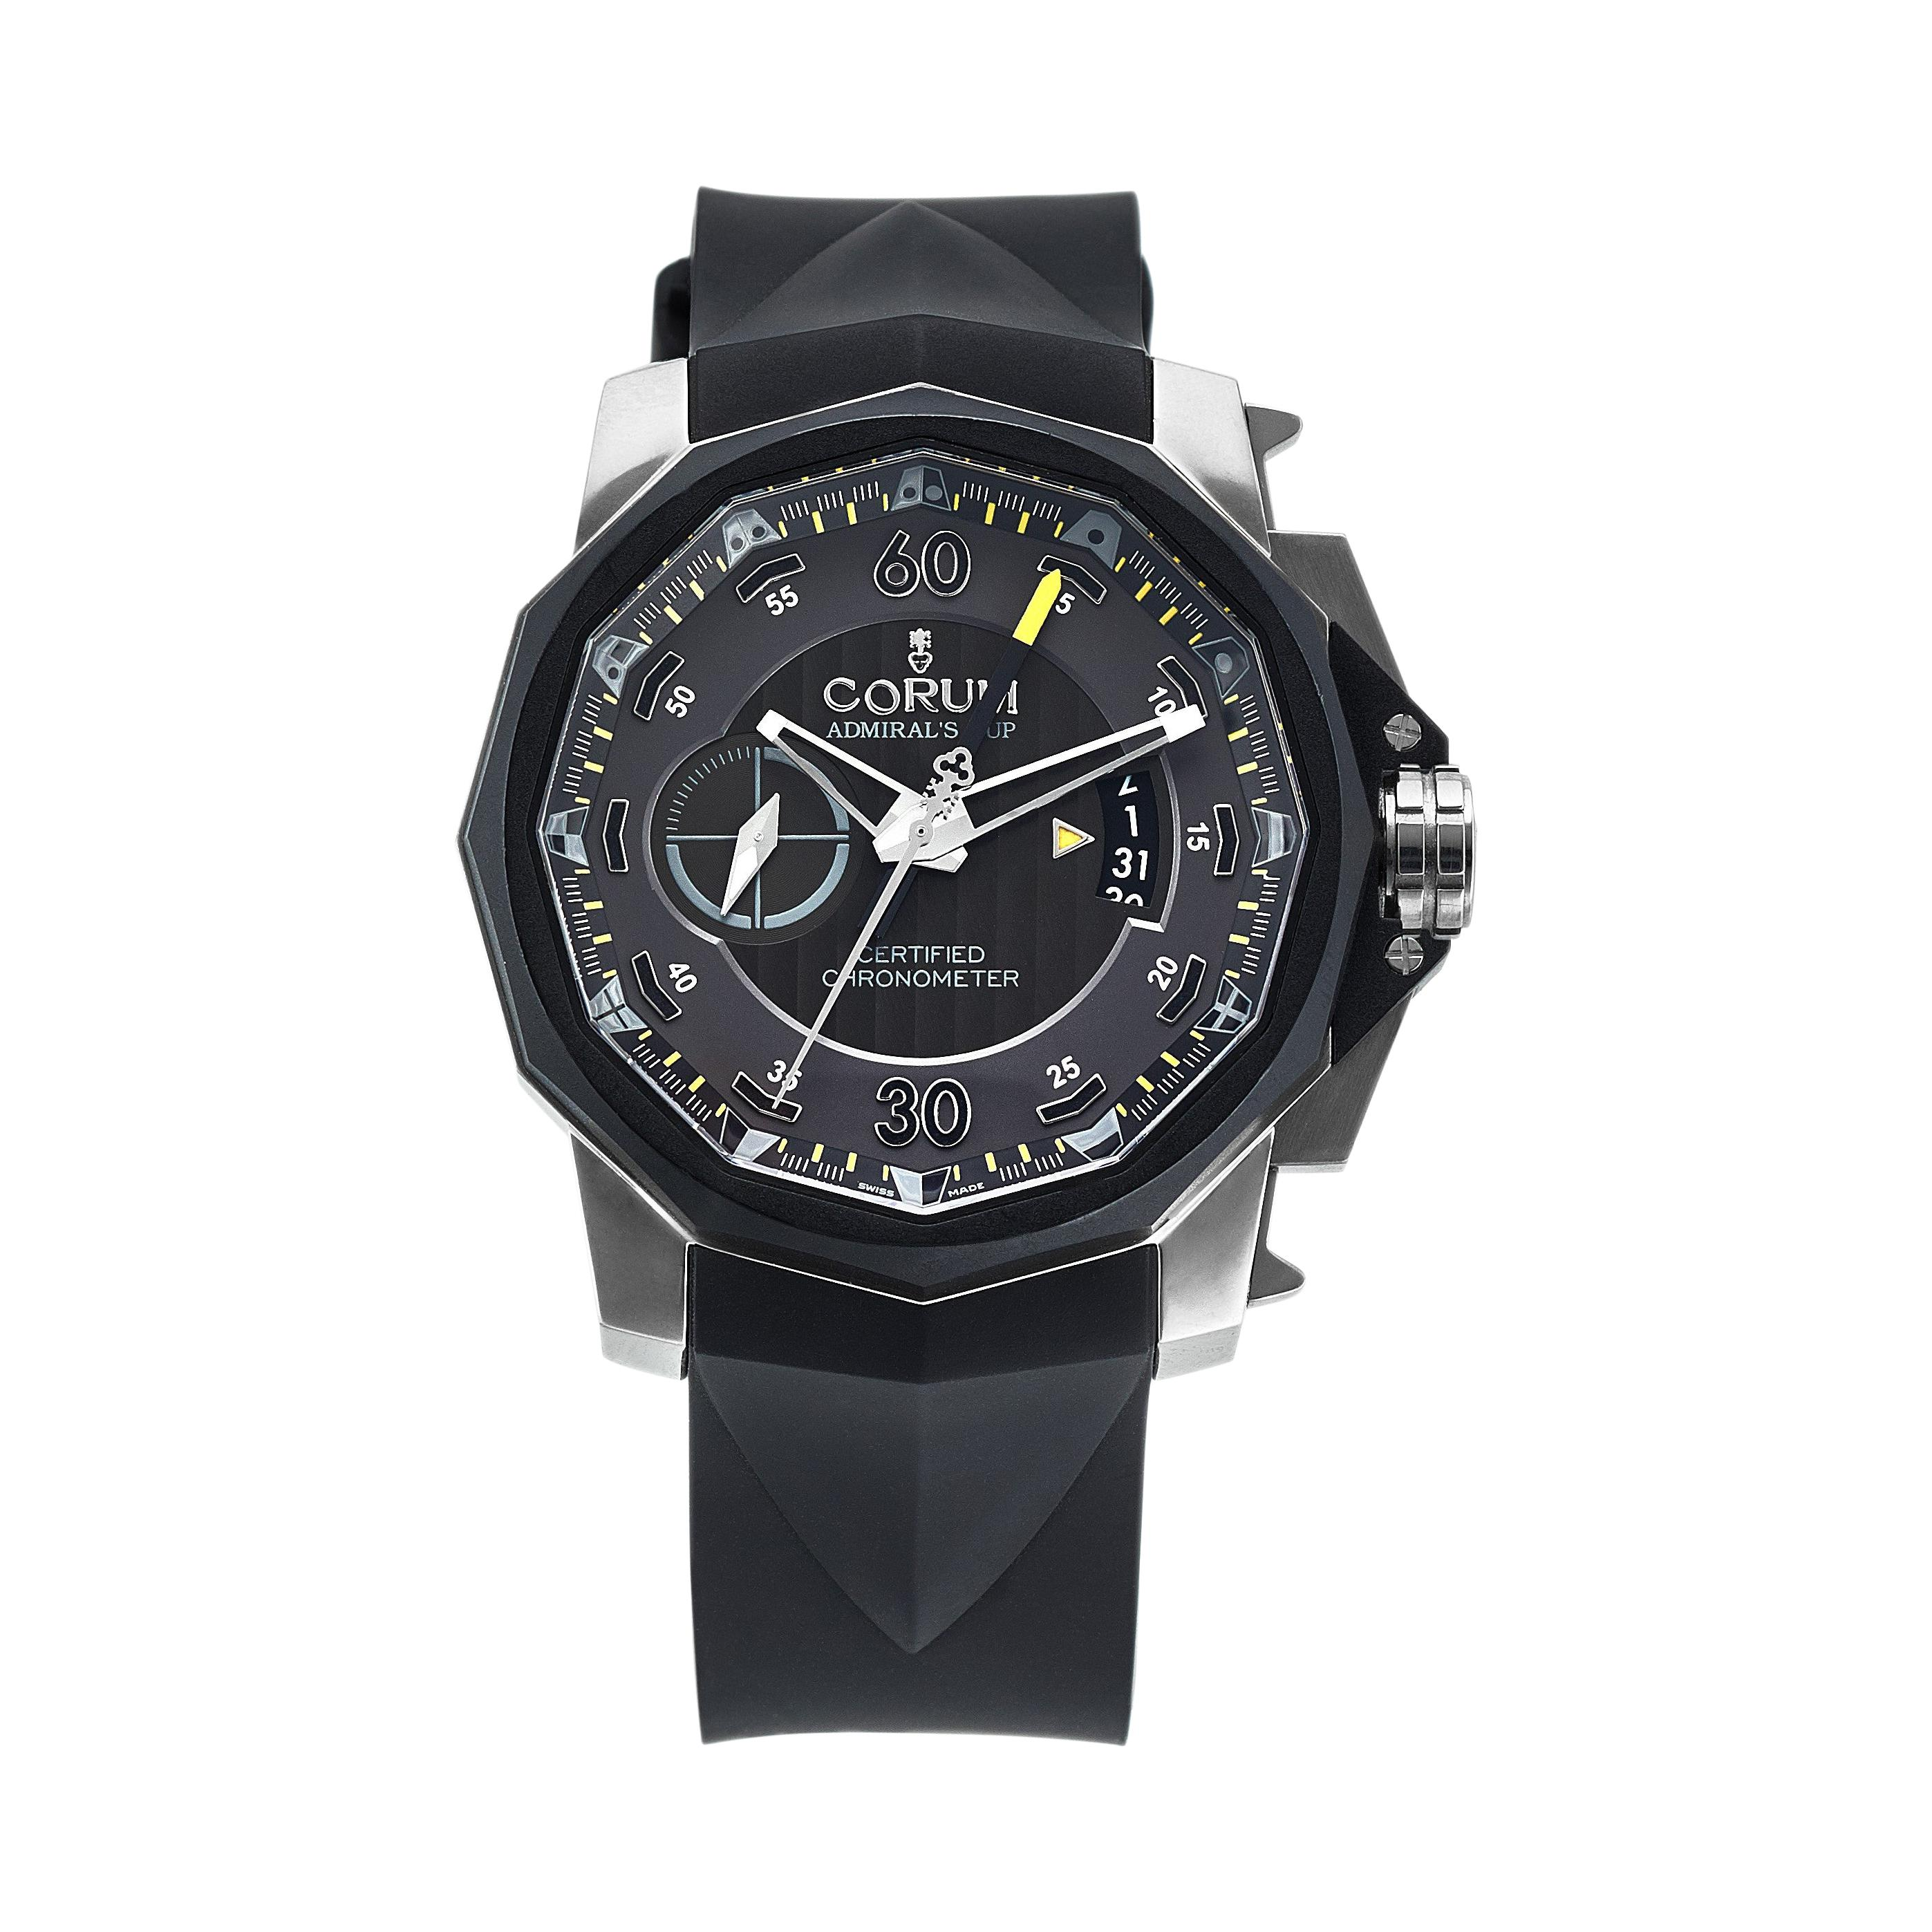 Corum Admirals Cup Chronograph Stainless Steel Black Rubber Watch